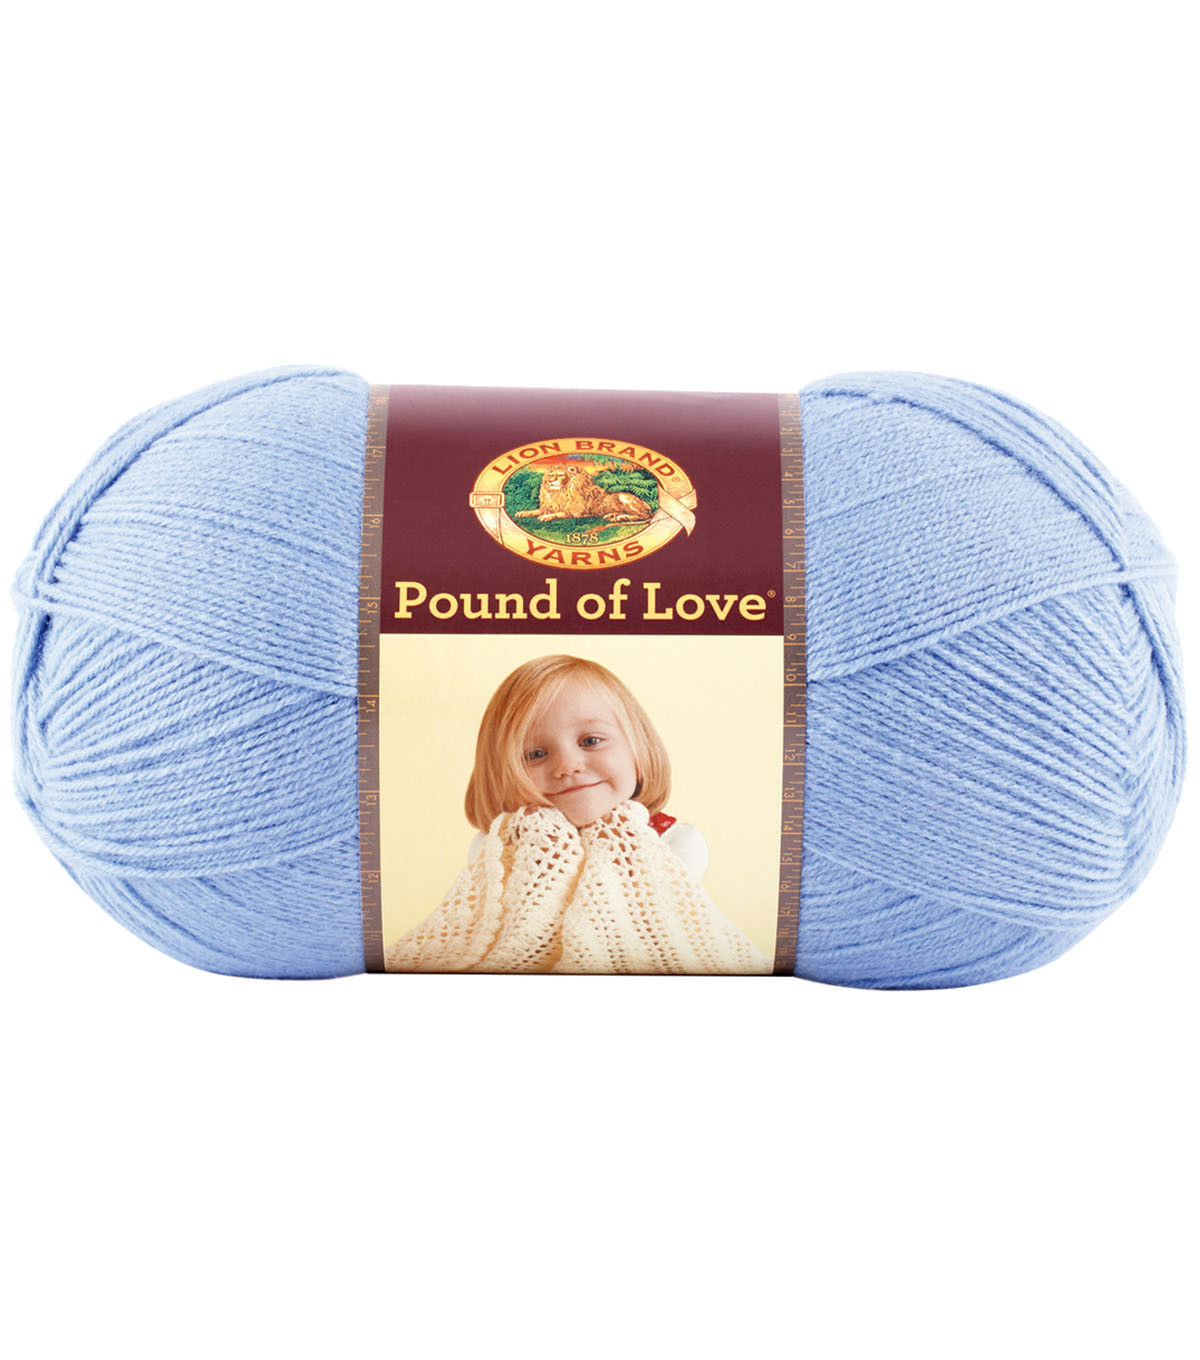 Lion Brand Pound of Love Yarn at Joann